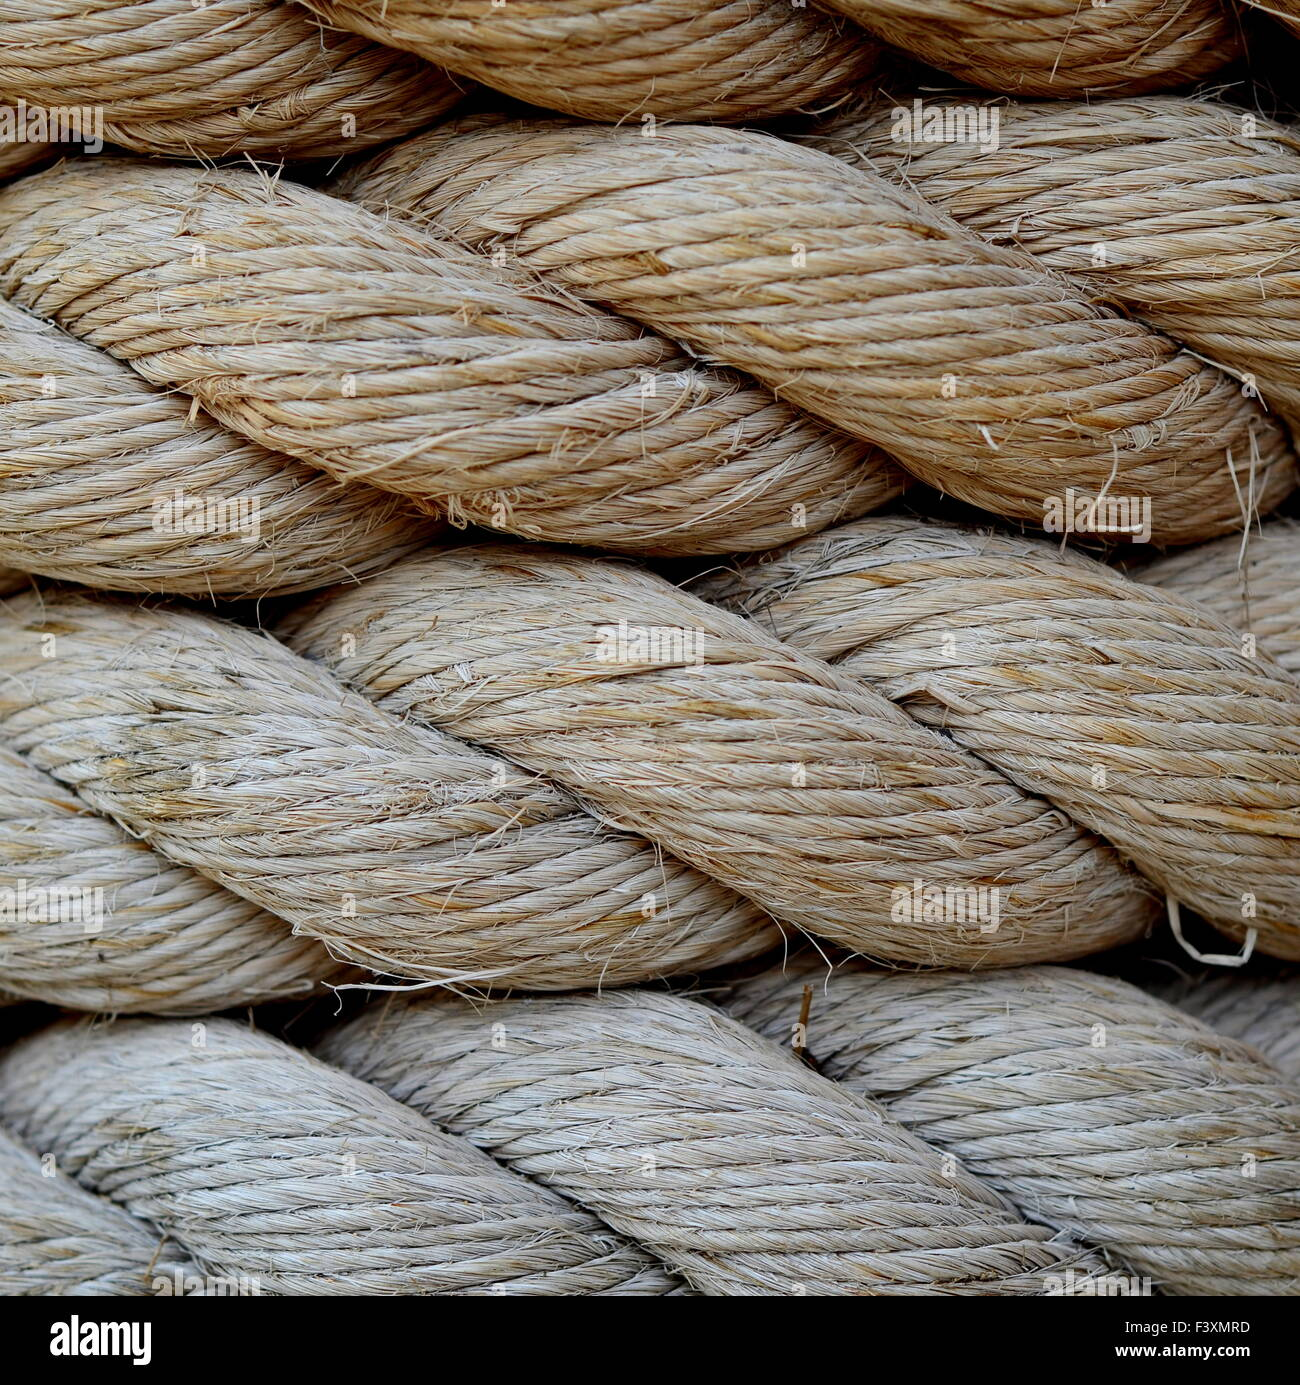 A Background Texture Of Grungy Old Rope Stock Photo